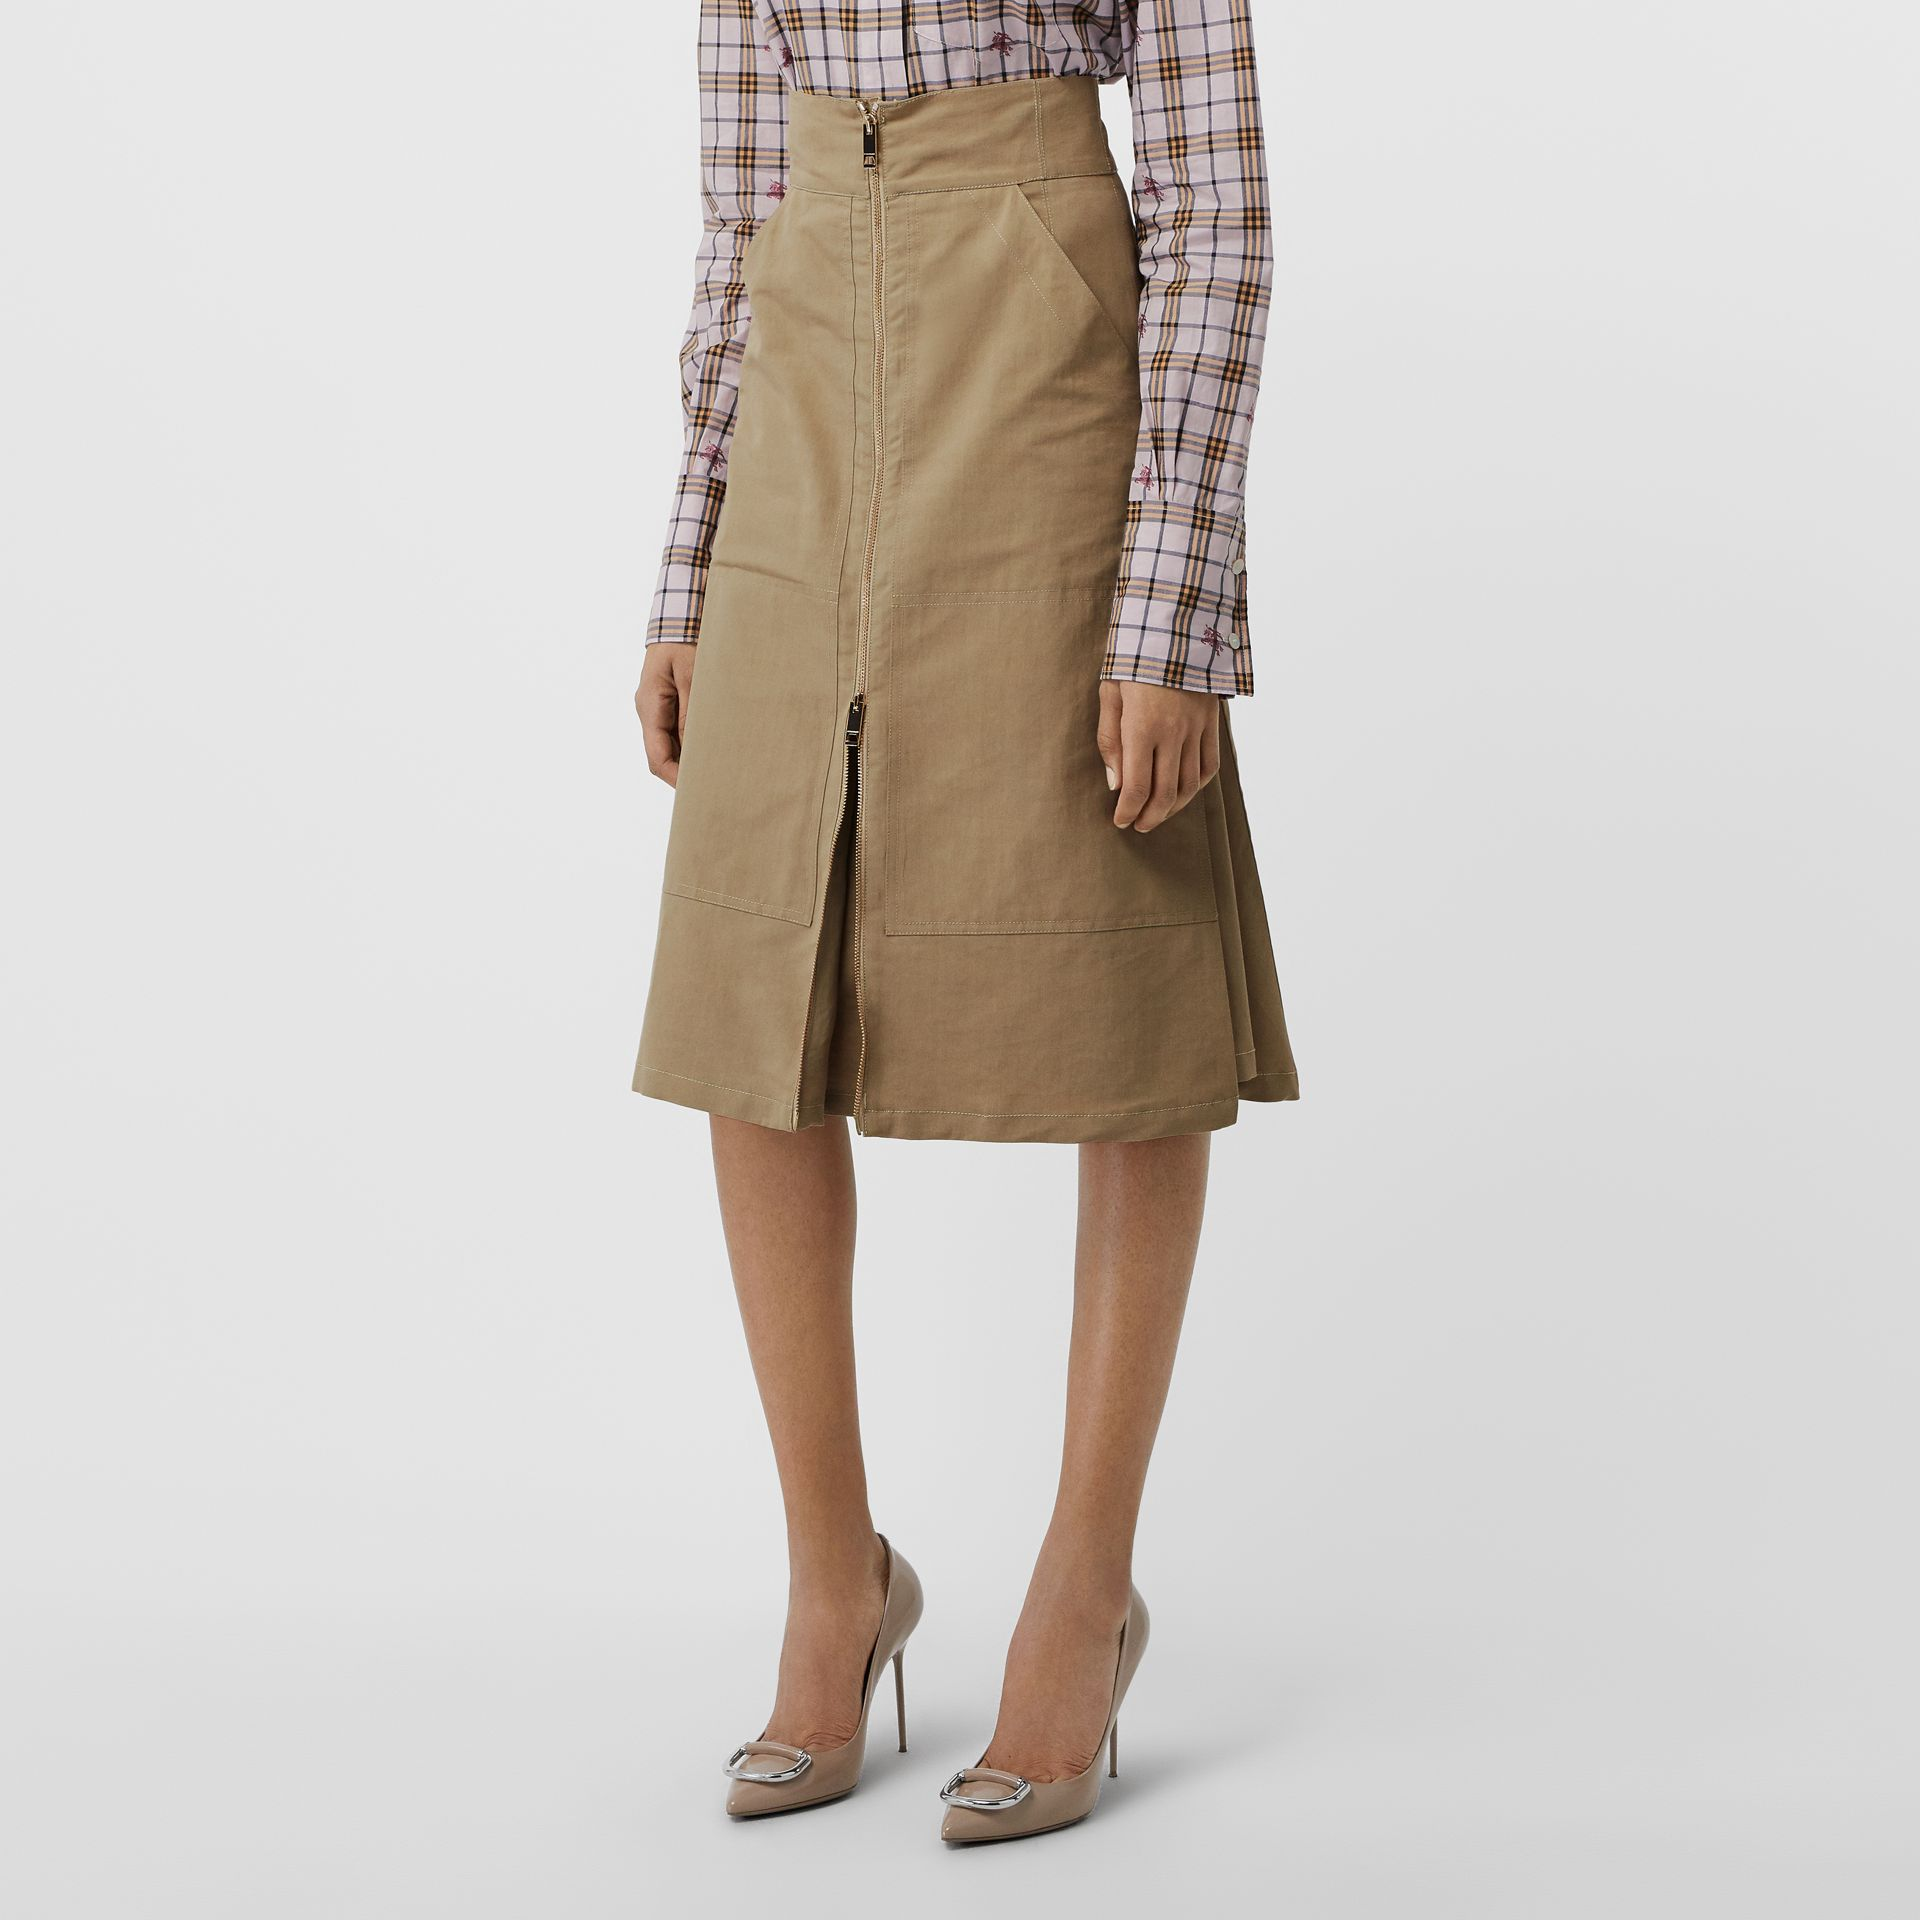 Cotton Silk High-waisted Skirt in Beige - Women | Burberry Hong Kong - gallery image 4